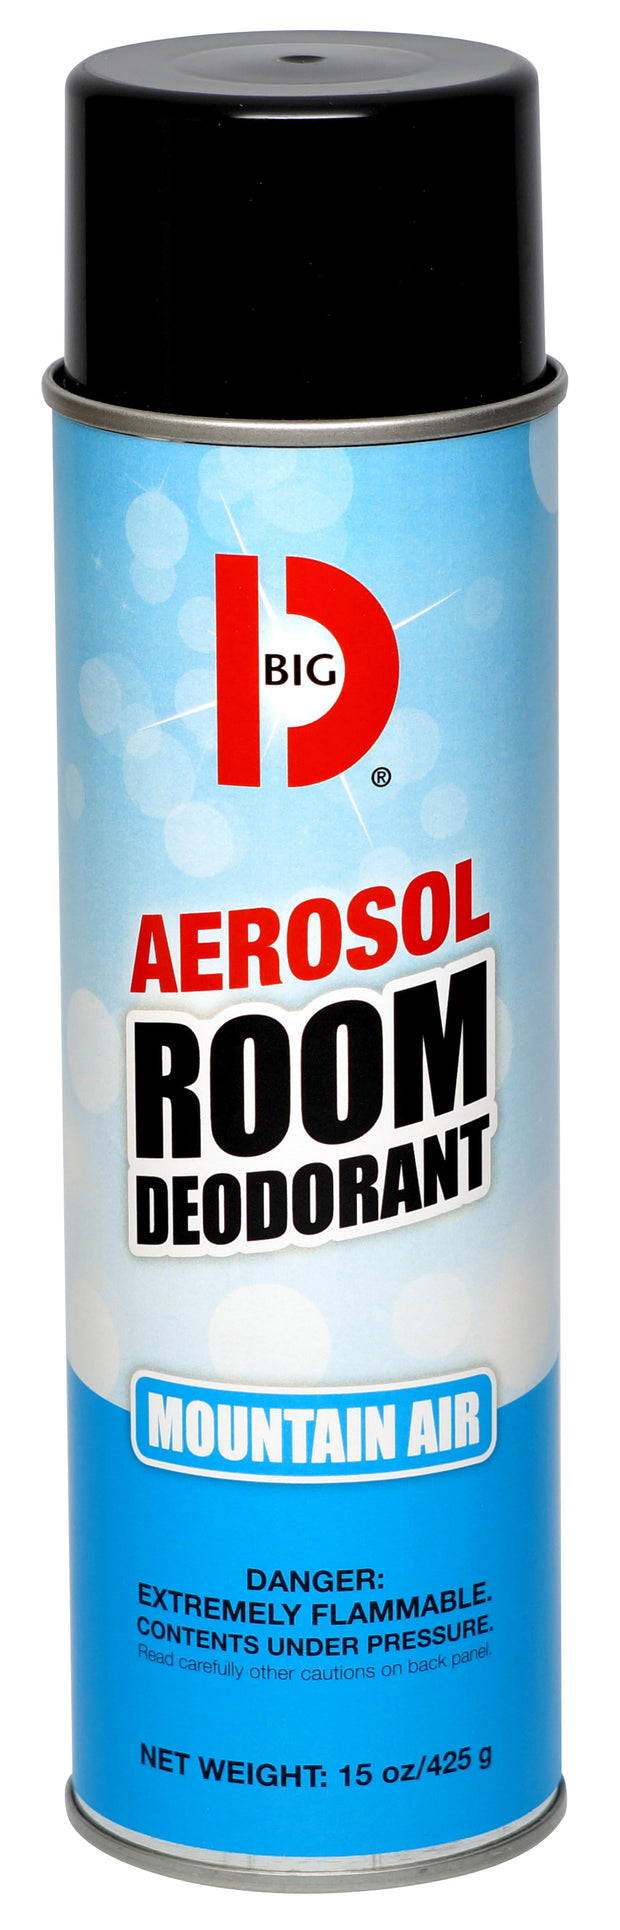 BIG D® MOUNTAIN AIR AEROSOL ROOM DEODORANT, 15oz 12/cs